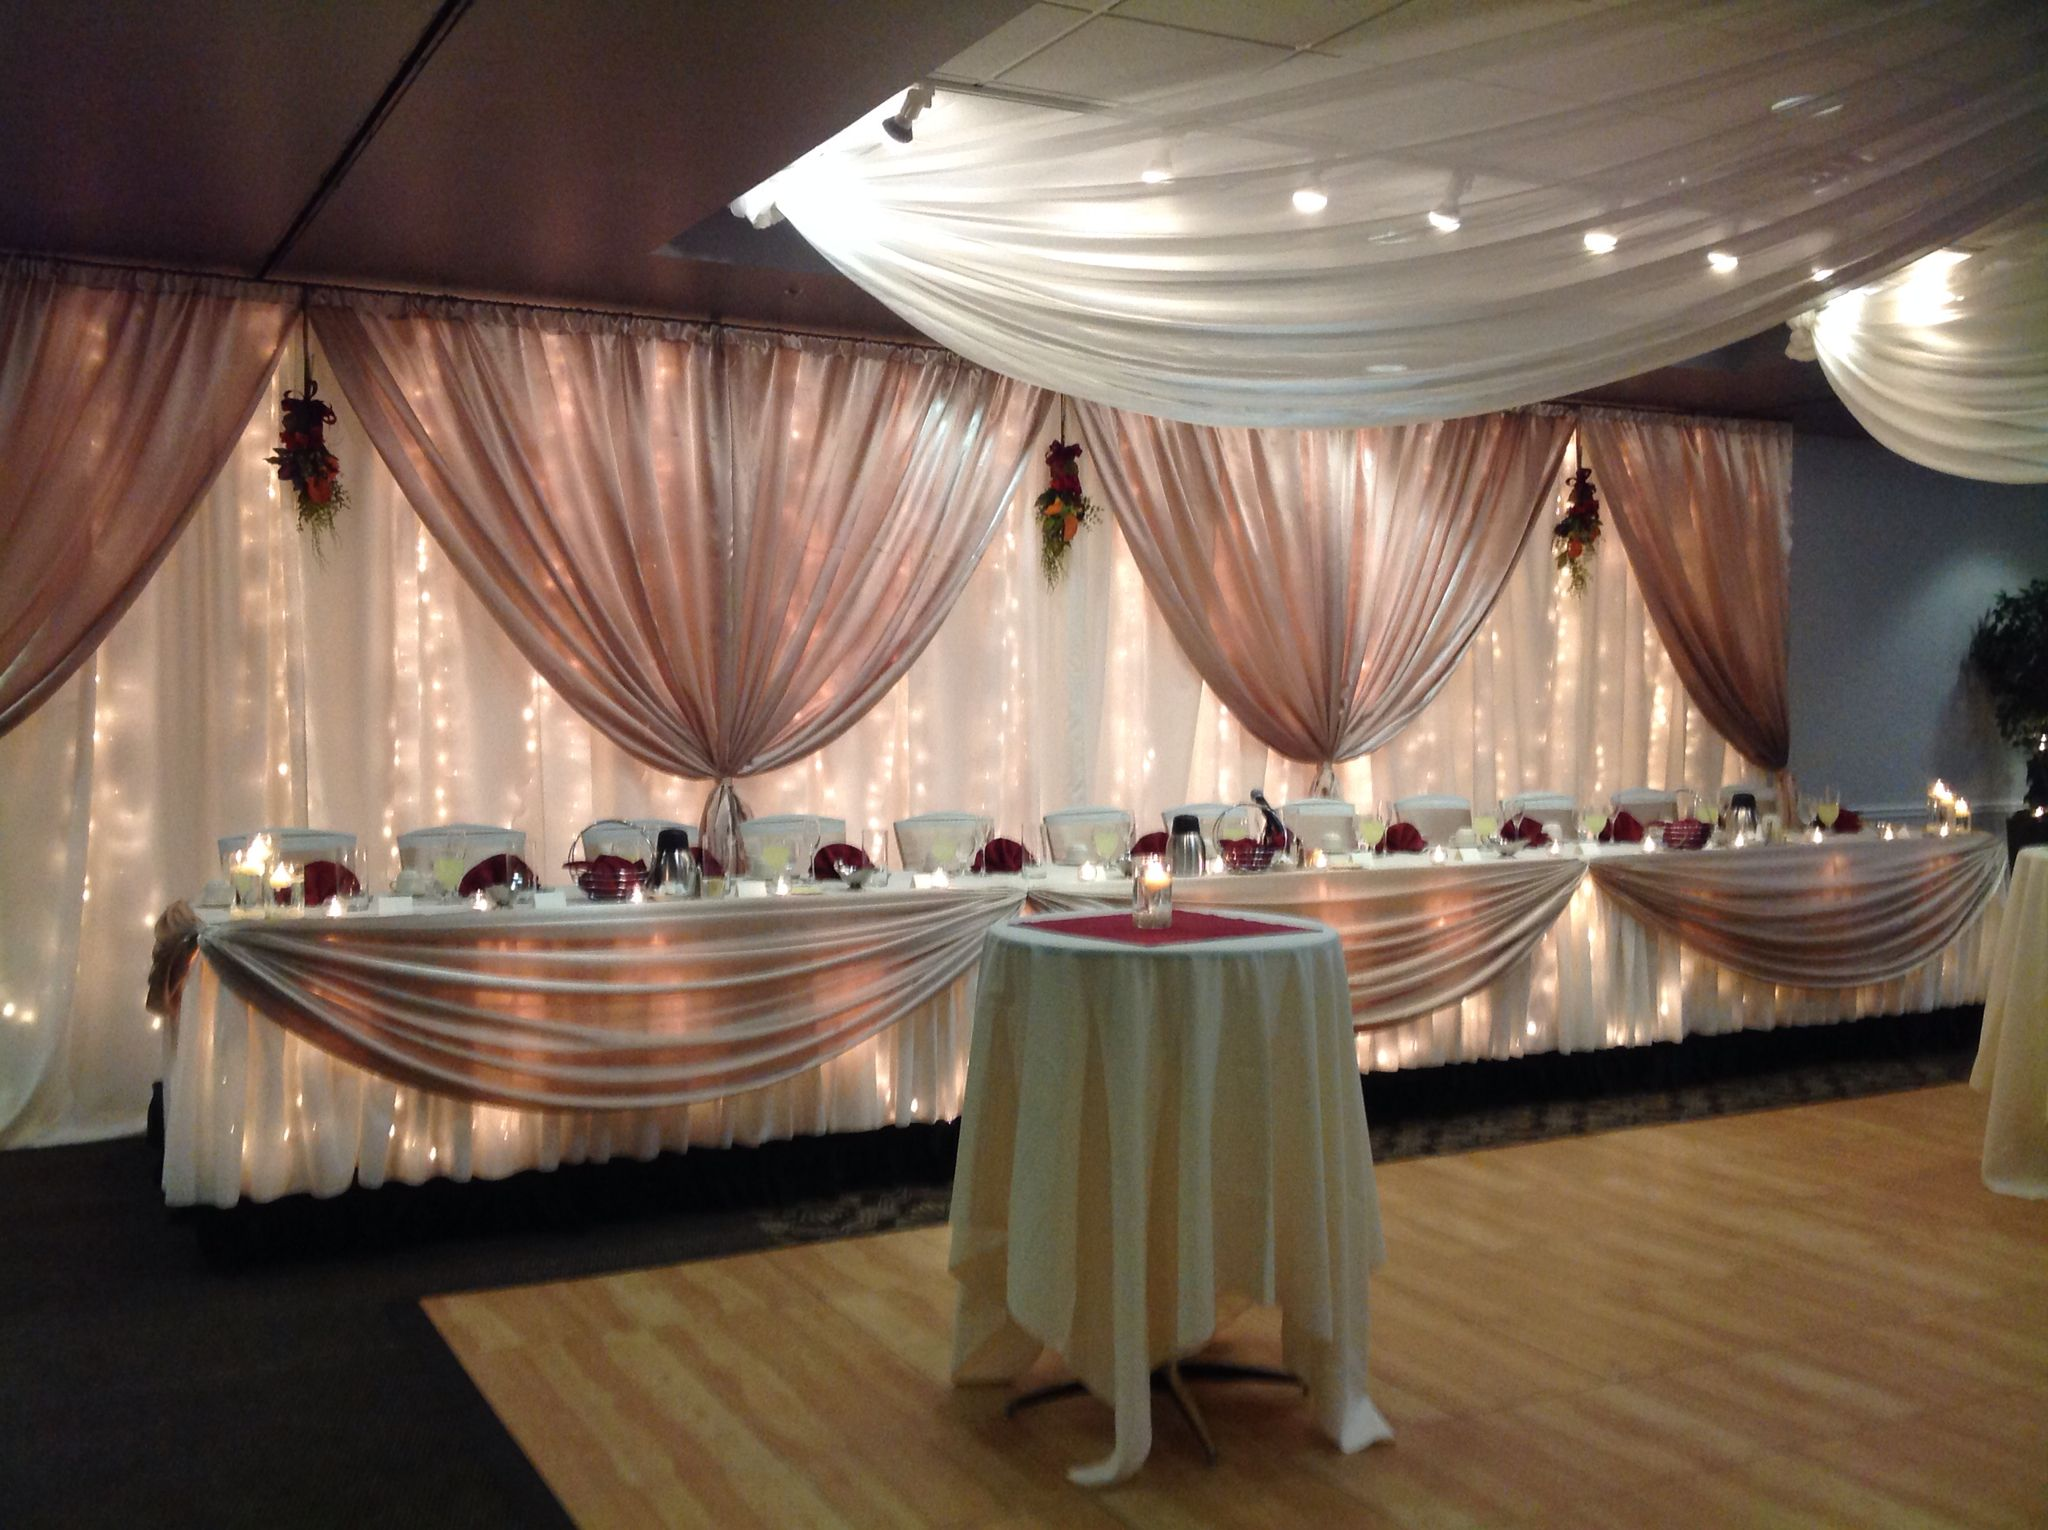 Canadian Honker Events At Apace Rochester Mn Weddings Decor Headtable Backdrop Head Table Wedding Beautiful Decor Wedding Deco